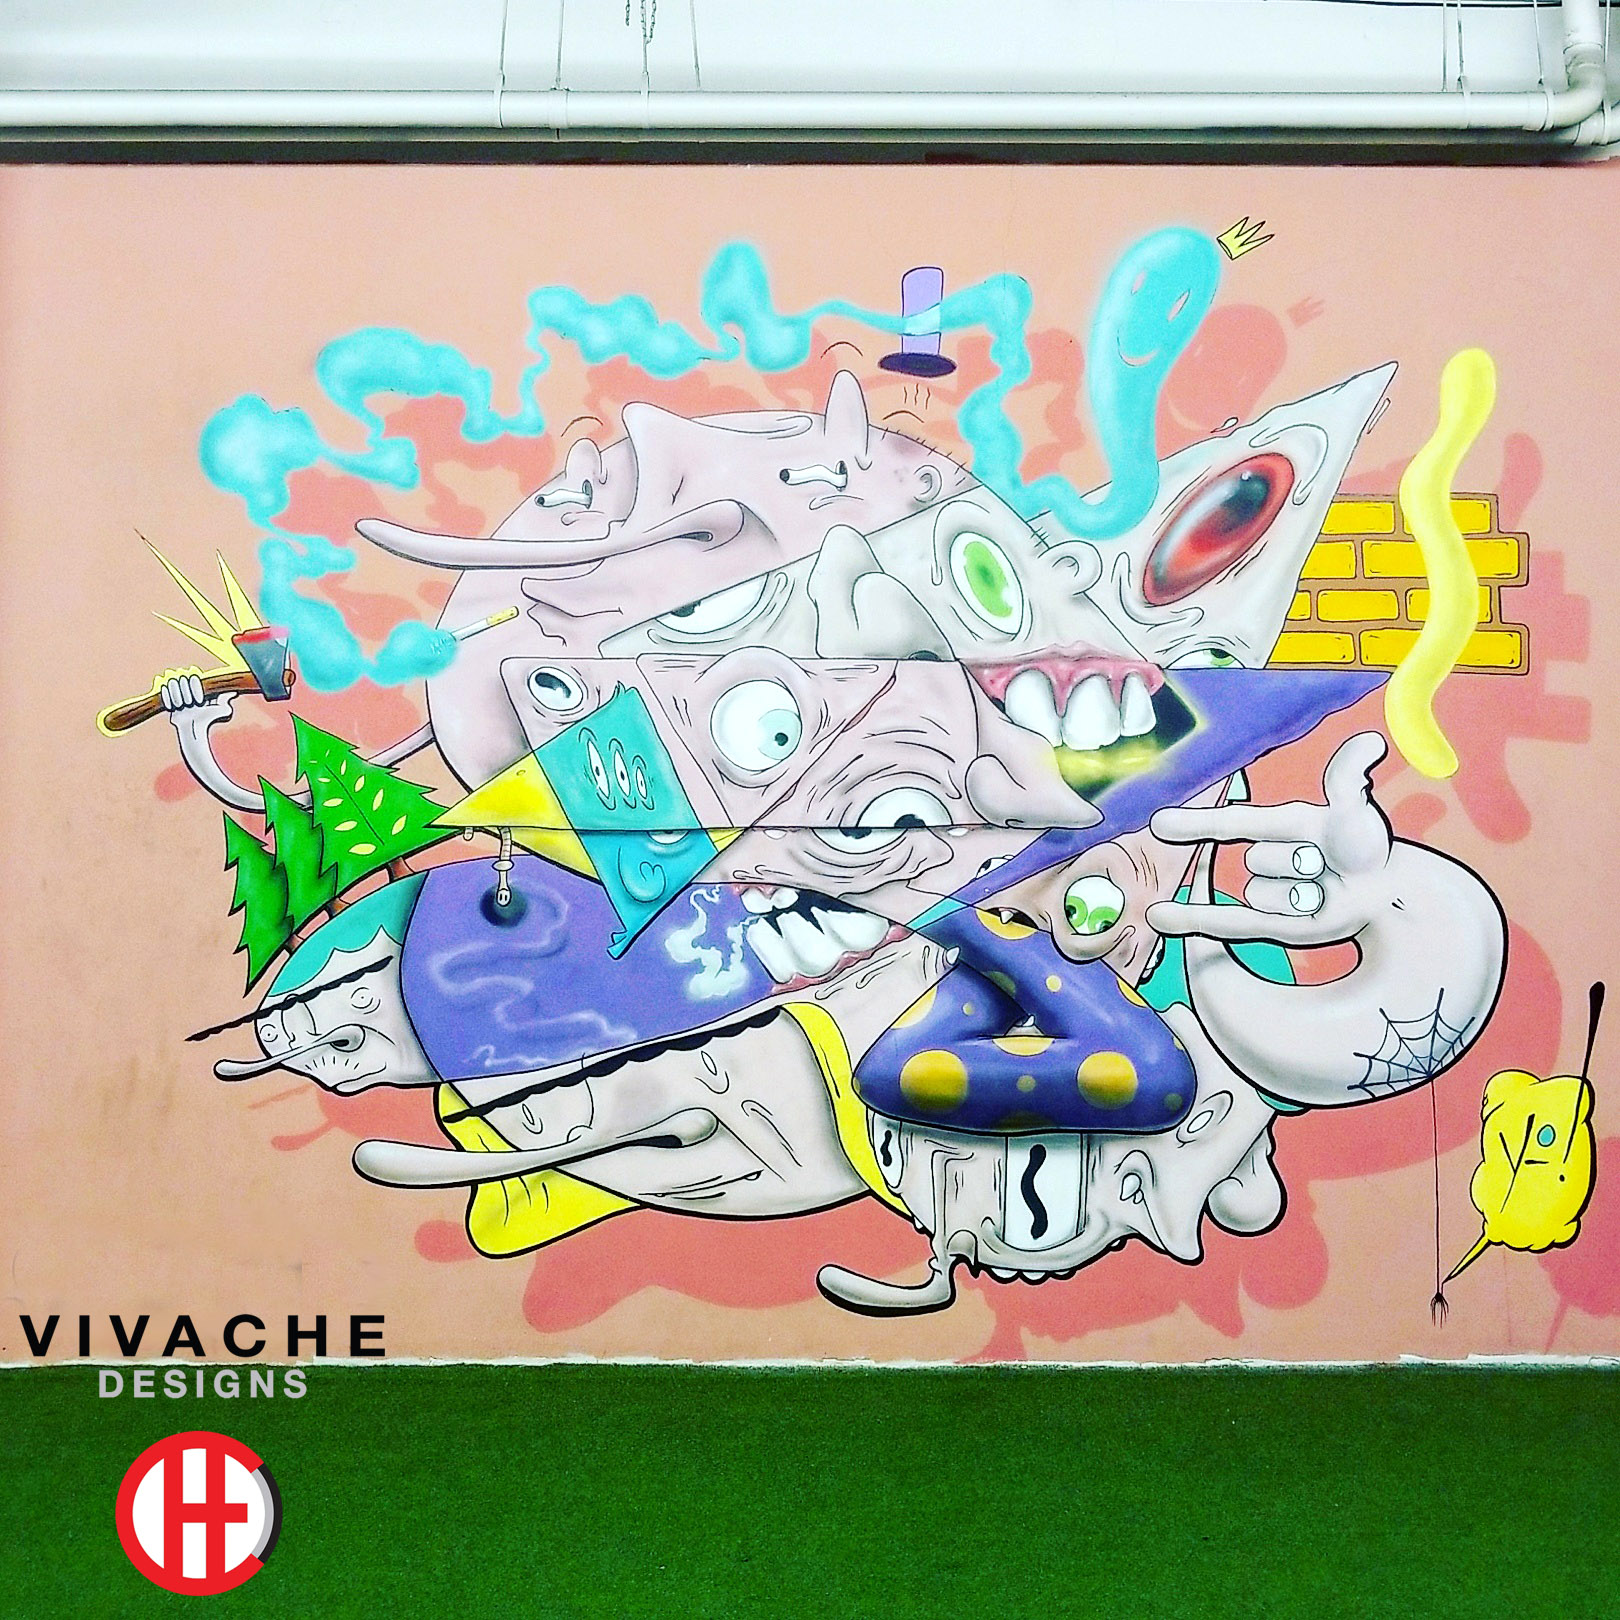 Mural Painter Vivache Designs Wall Mural Art Gallery LA Art District Mural Painting.jpg